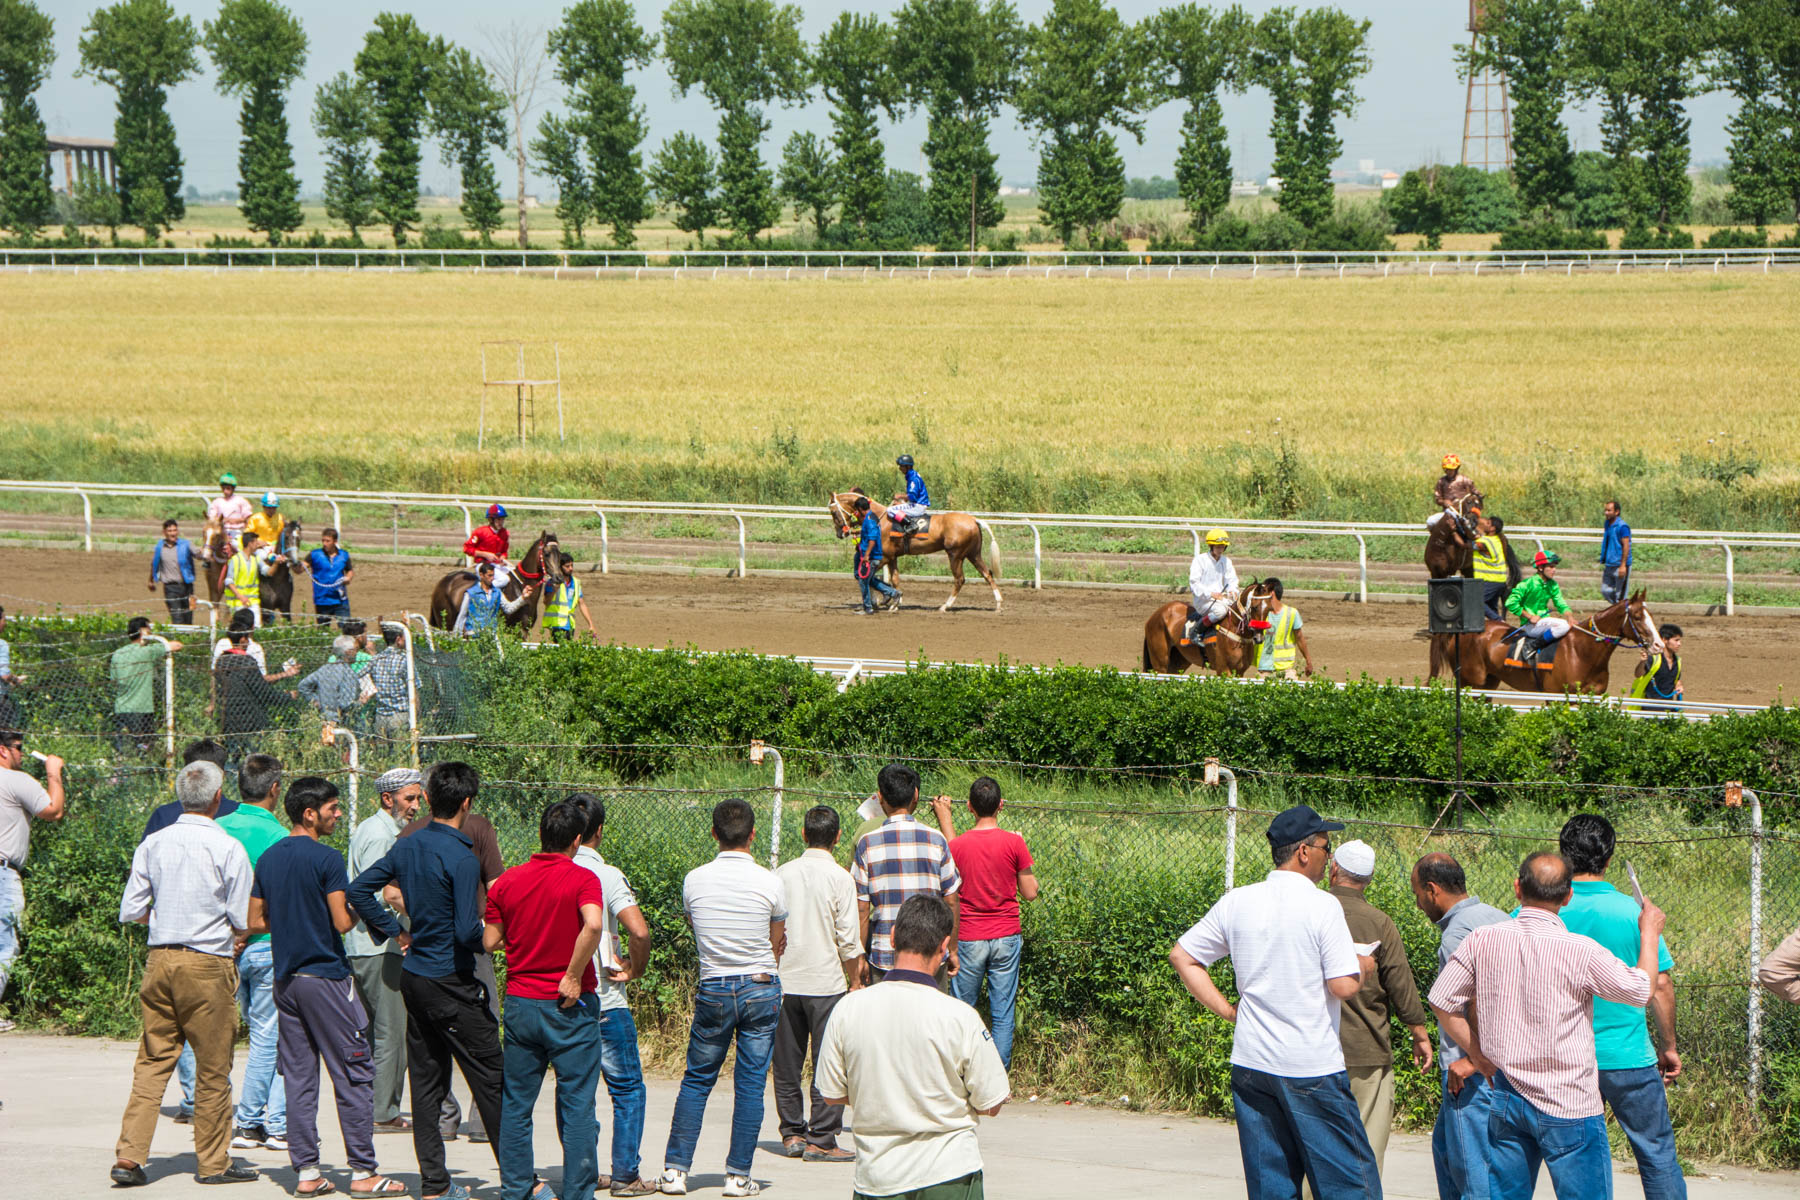 The jockeys and their rides being displayed before the race at the horse races in Gonbad-e Kavus, Iran.